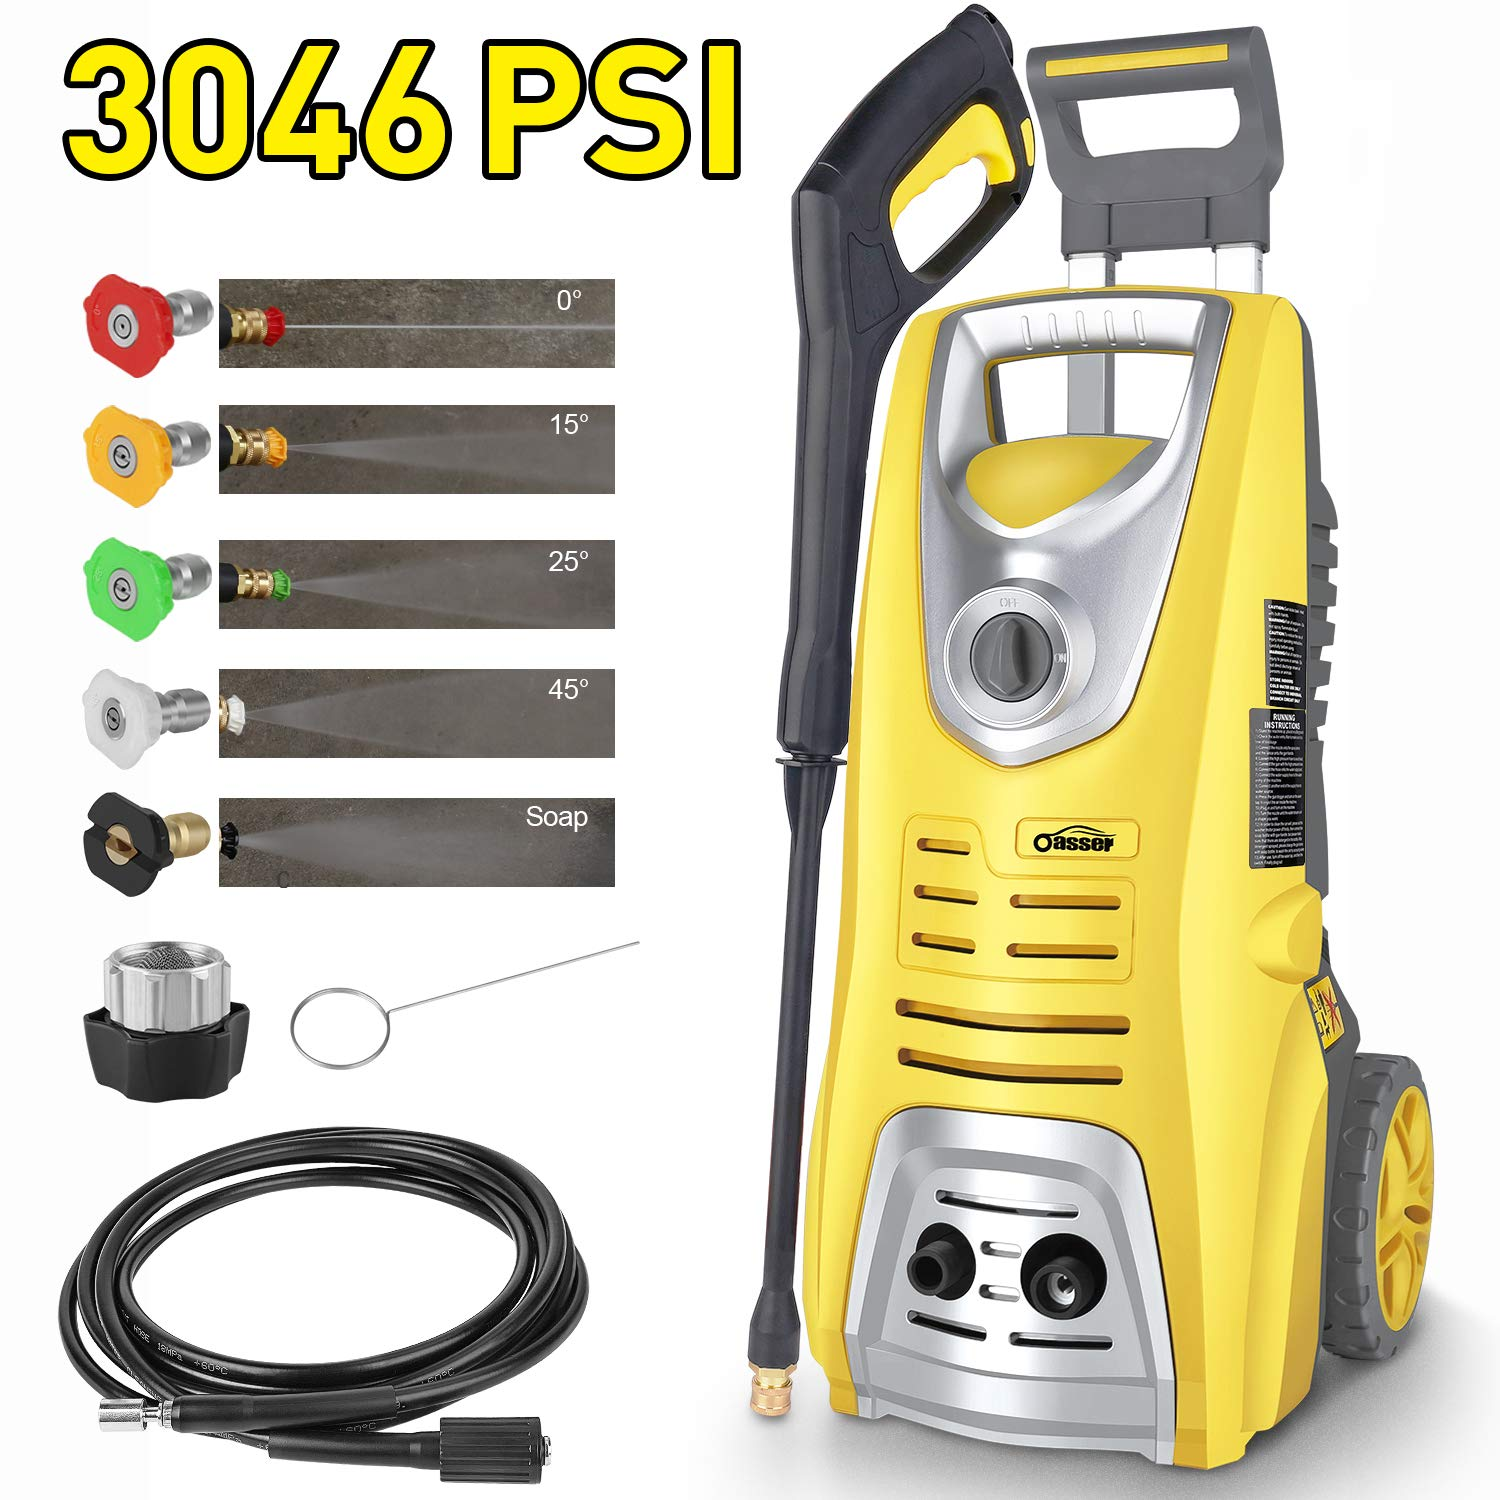 oasser Electric Pressure Washer Power Washer 3046 PSI 1.85 GPM Pressure Cleaner 1800W Car Washer with Spray Gun 5 Nozzles 16ft High Pressure Hose by oasser